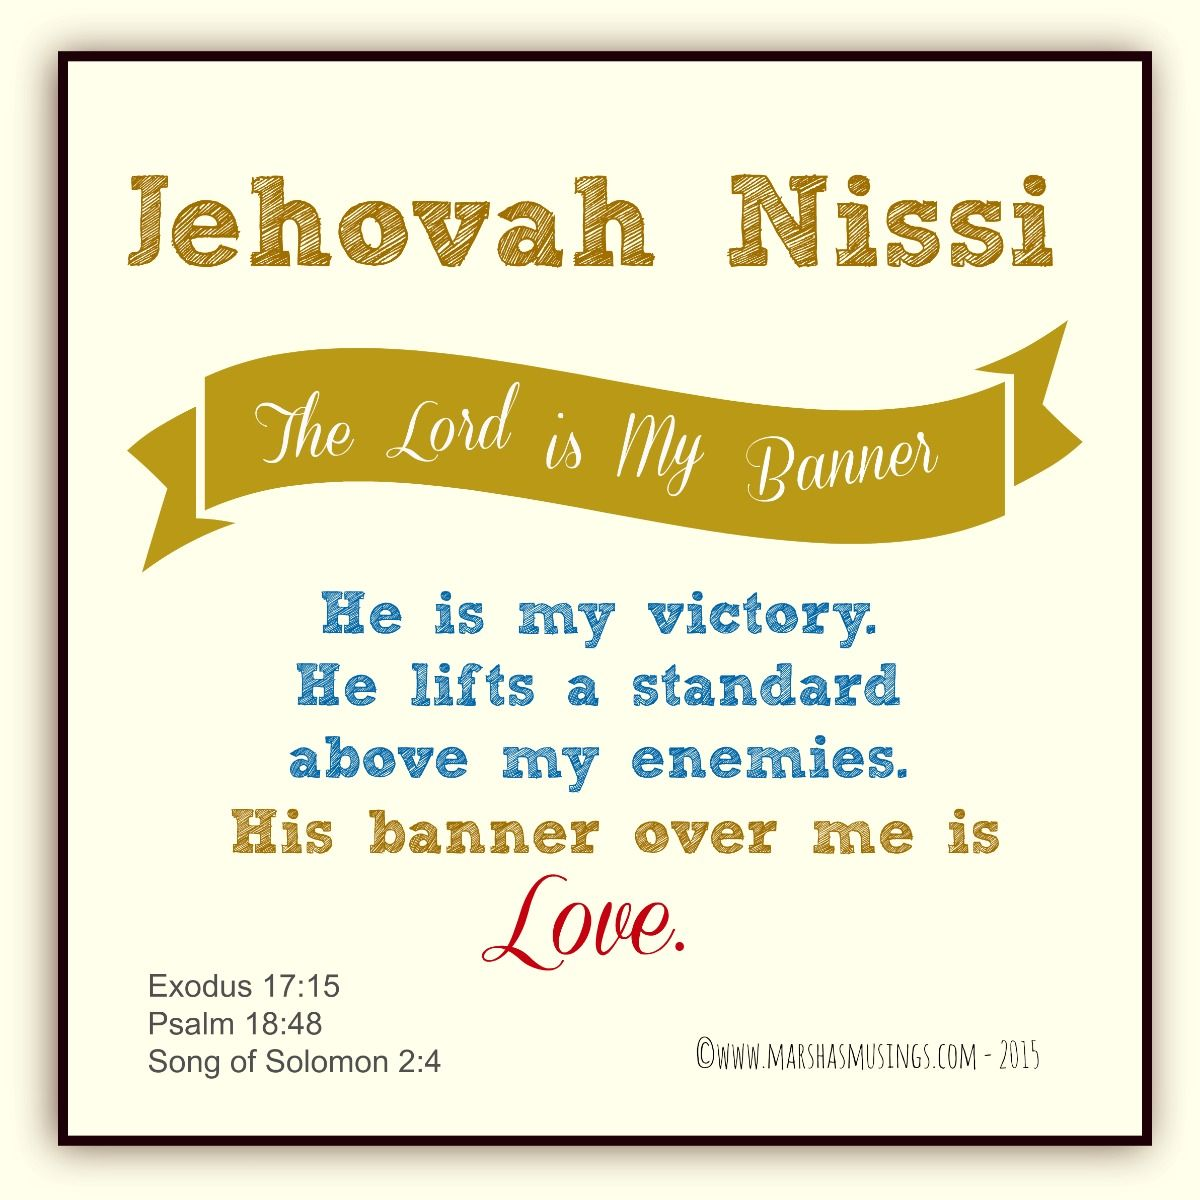 Jehovah Nissi - The Lord is My Banner | In Christ Alone | Attributes